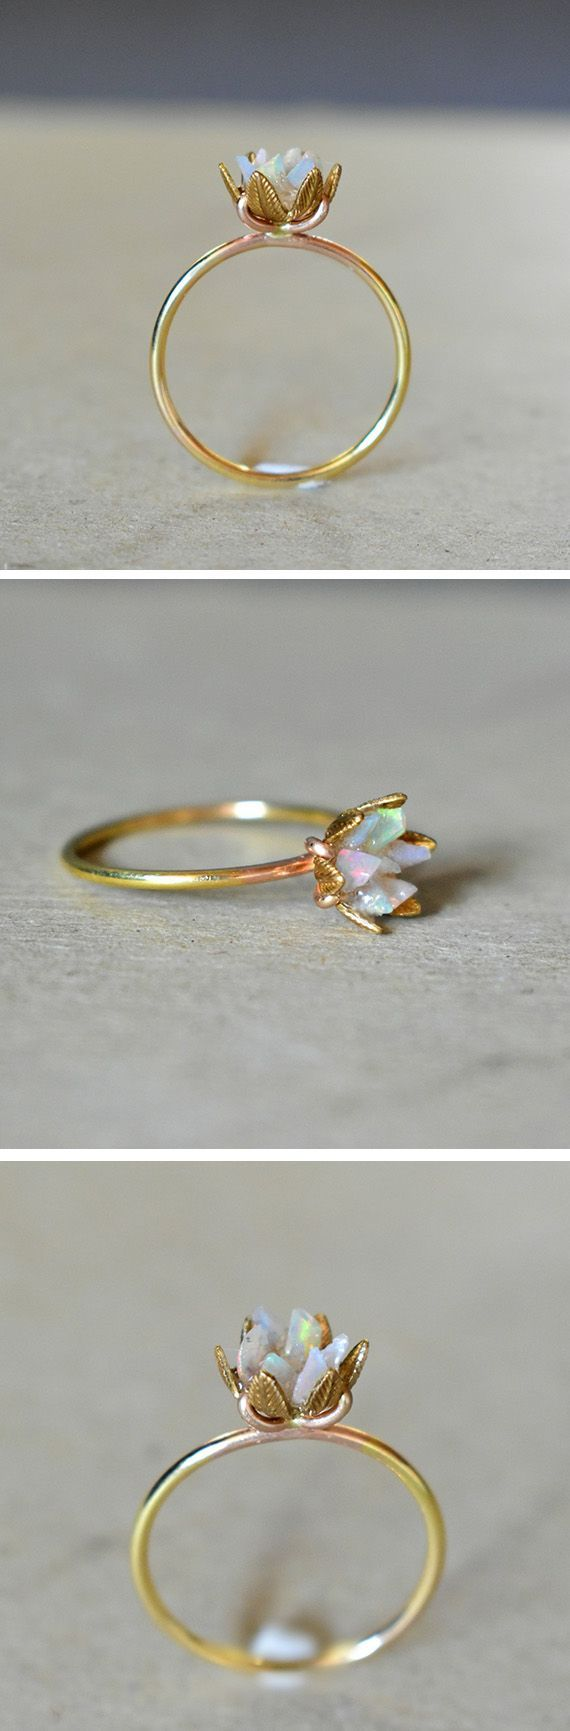 Unique Opal Ring, Lotus Flower Ring in Yellow Gold, Uncut Opal Engagement Ring, Raw Rough Fire Opal Jewelry, October Birthstone, Any Size